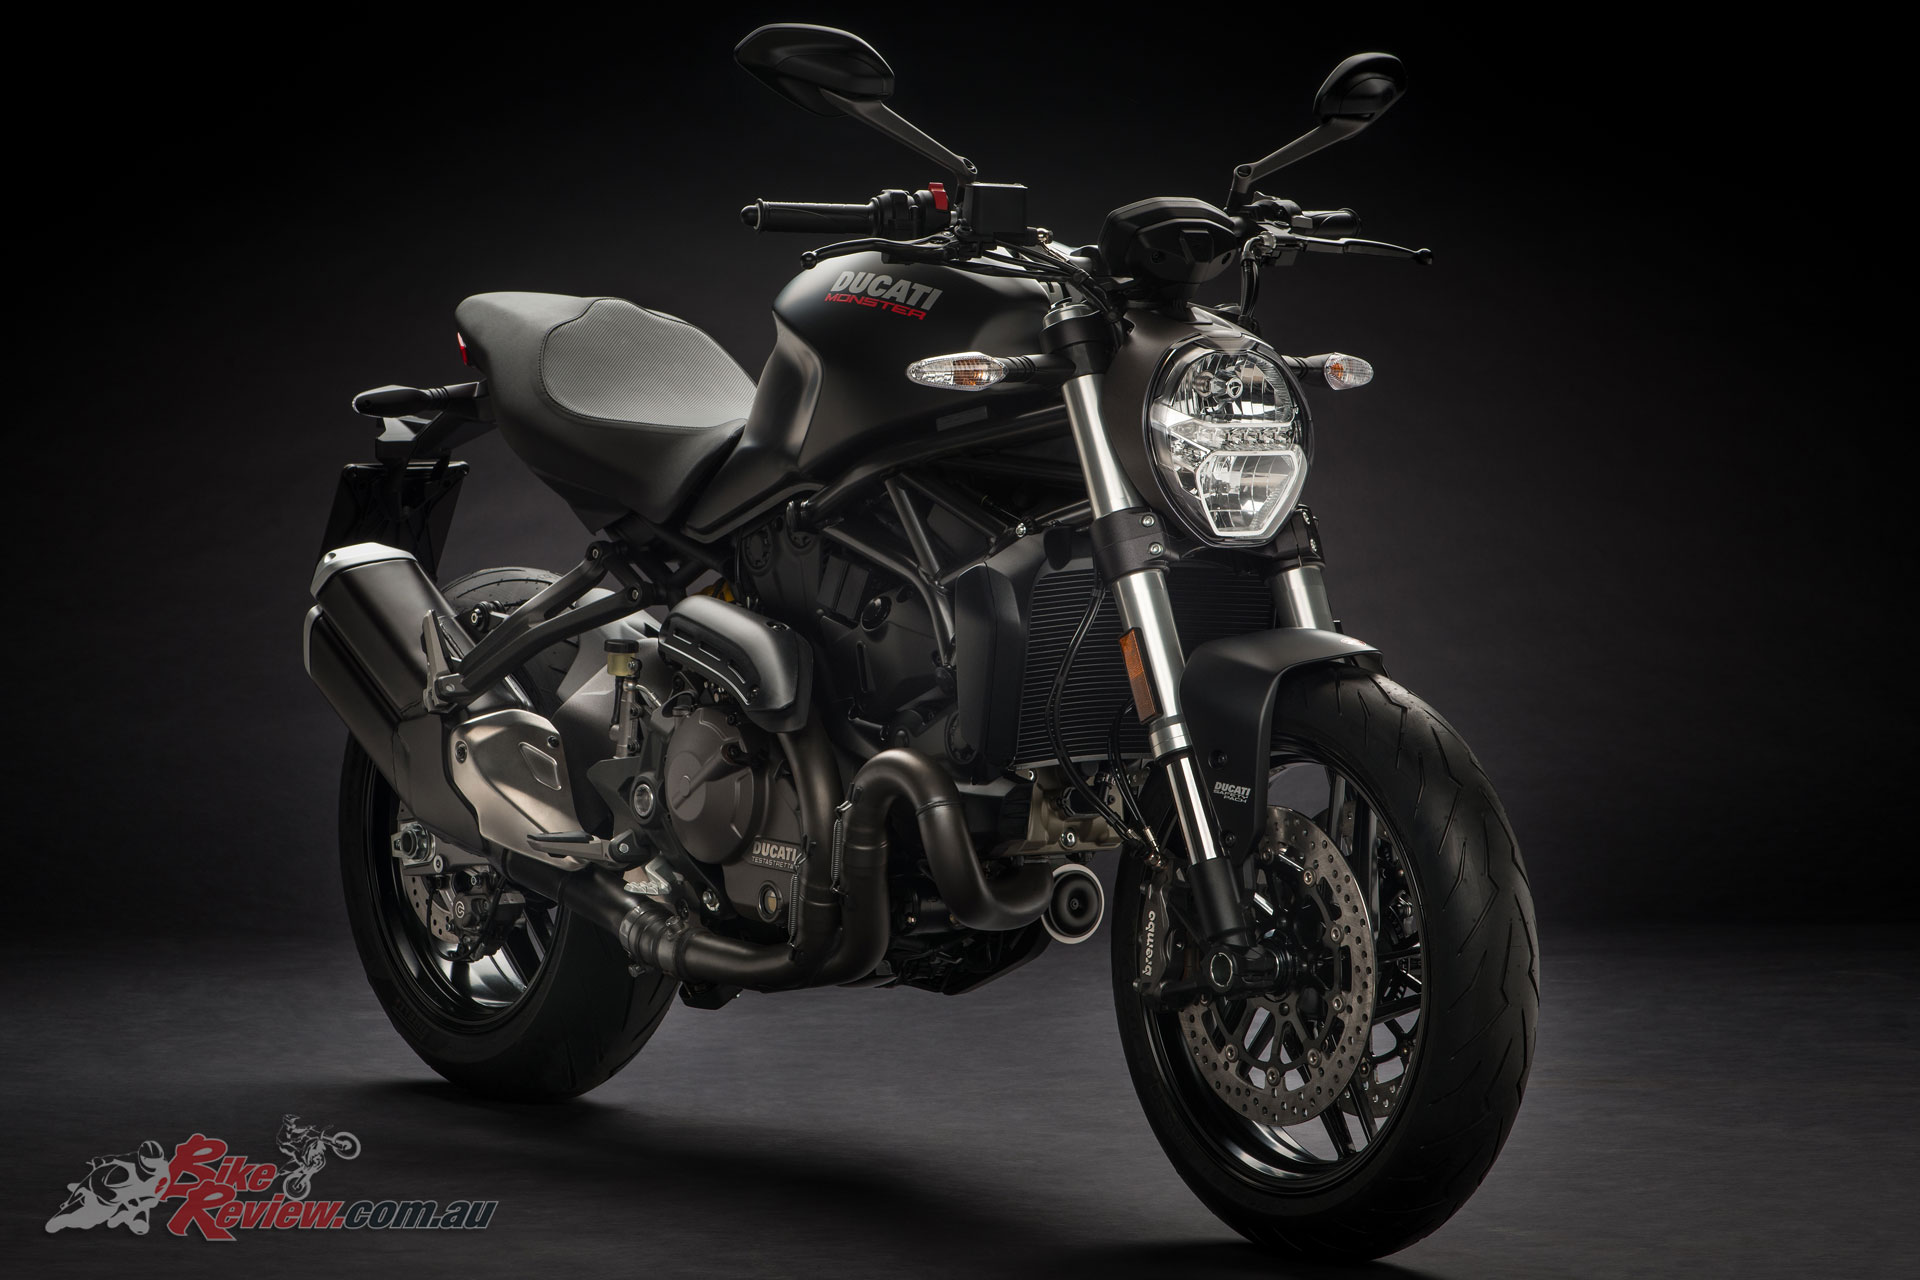 Ducati unveil 2018 Monster 821 for Monster's 25th ...  Ducati unveil 2...